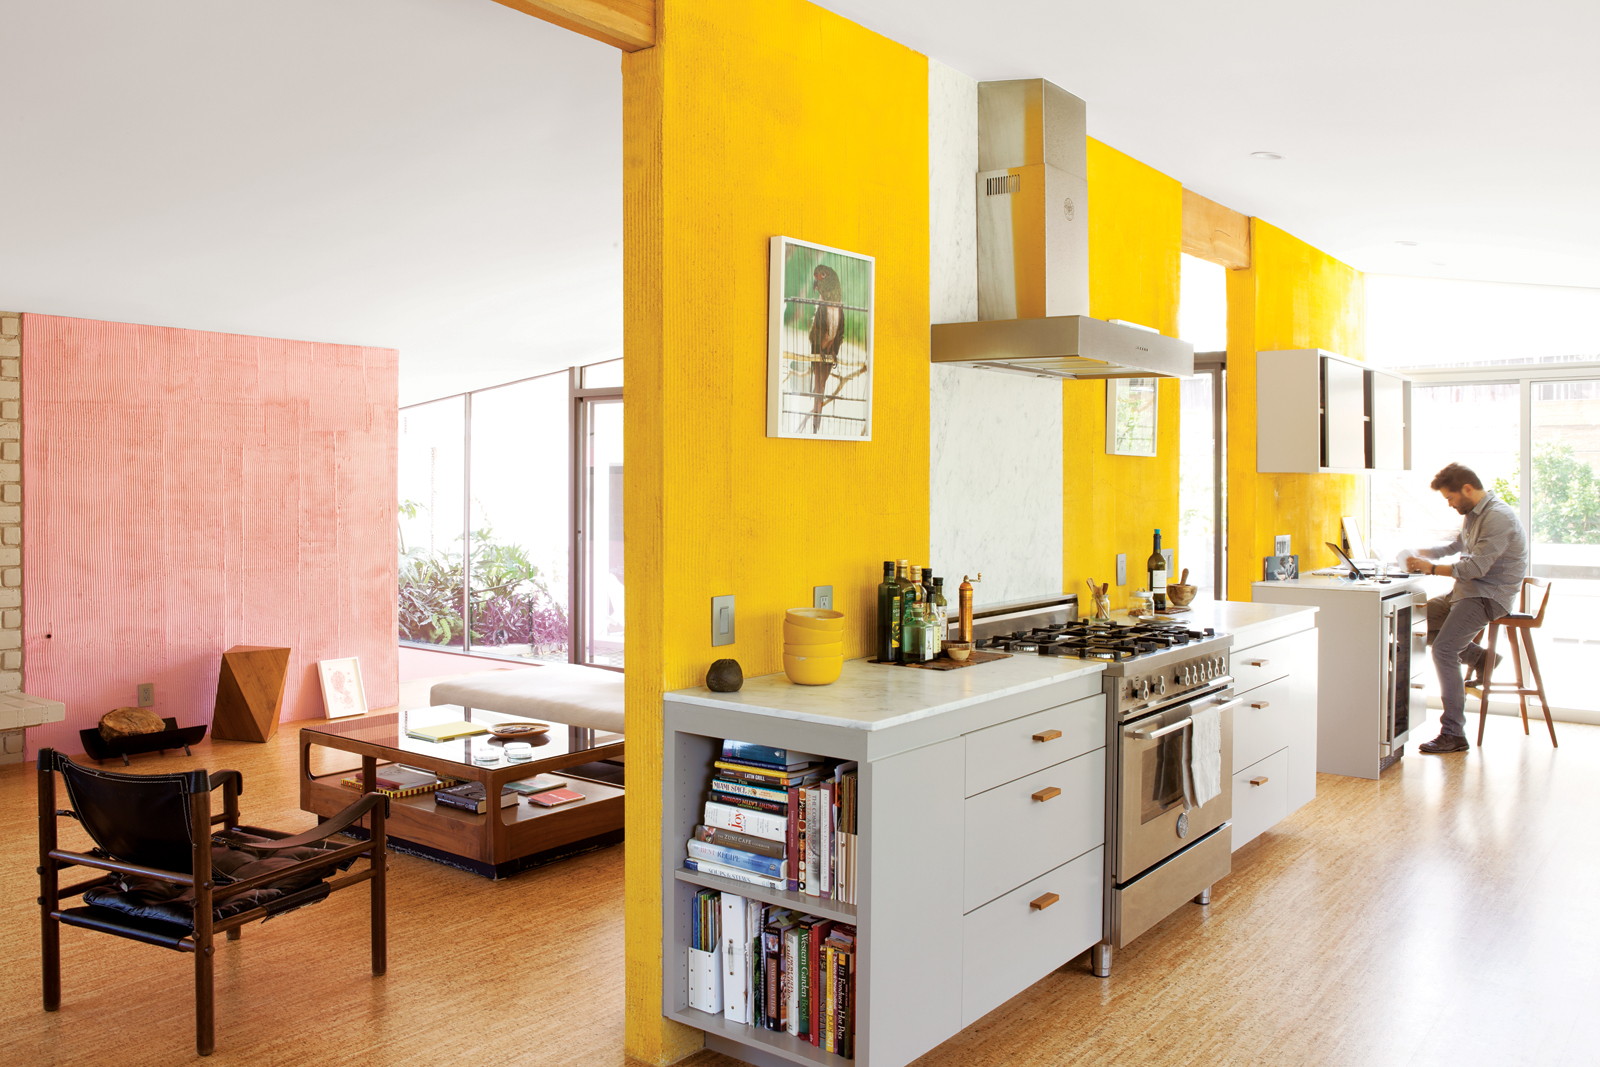 Modern kitchen with yellow sectioned walls and monochrome appliances